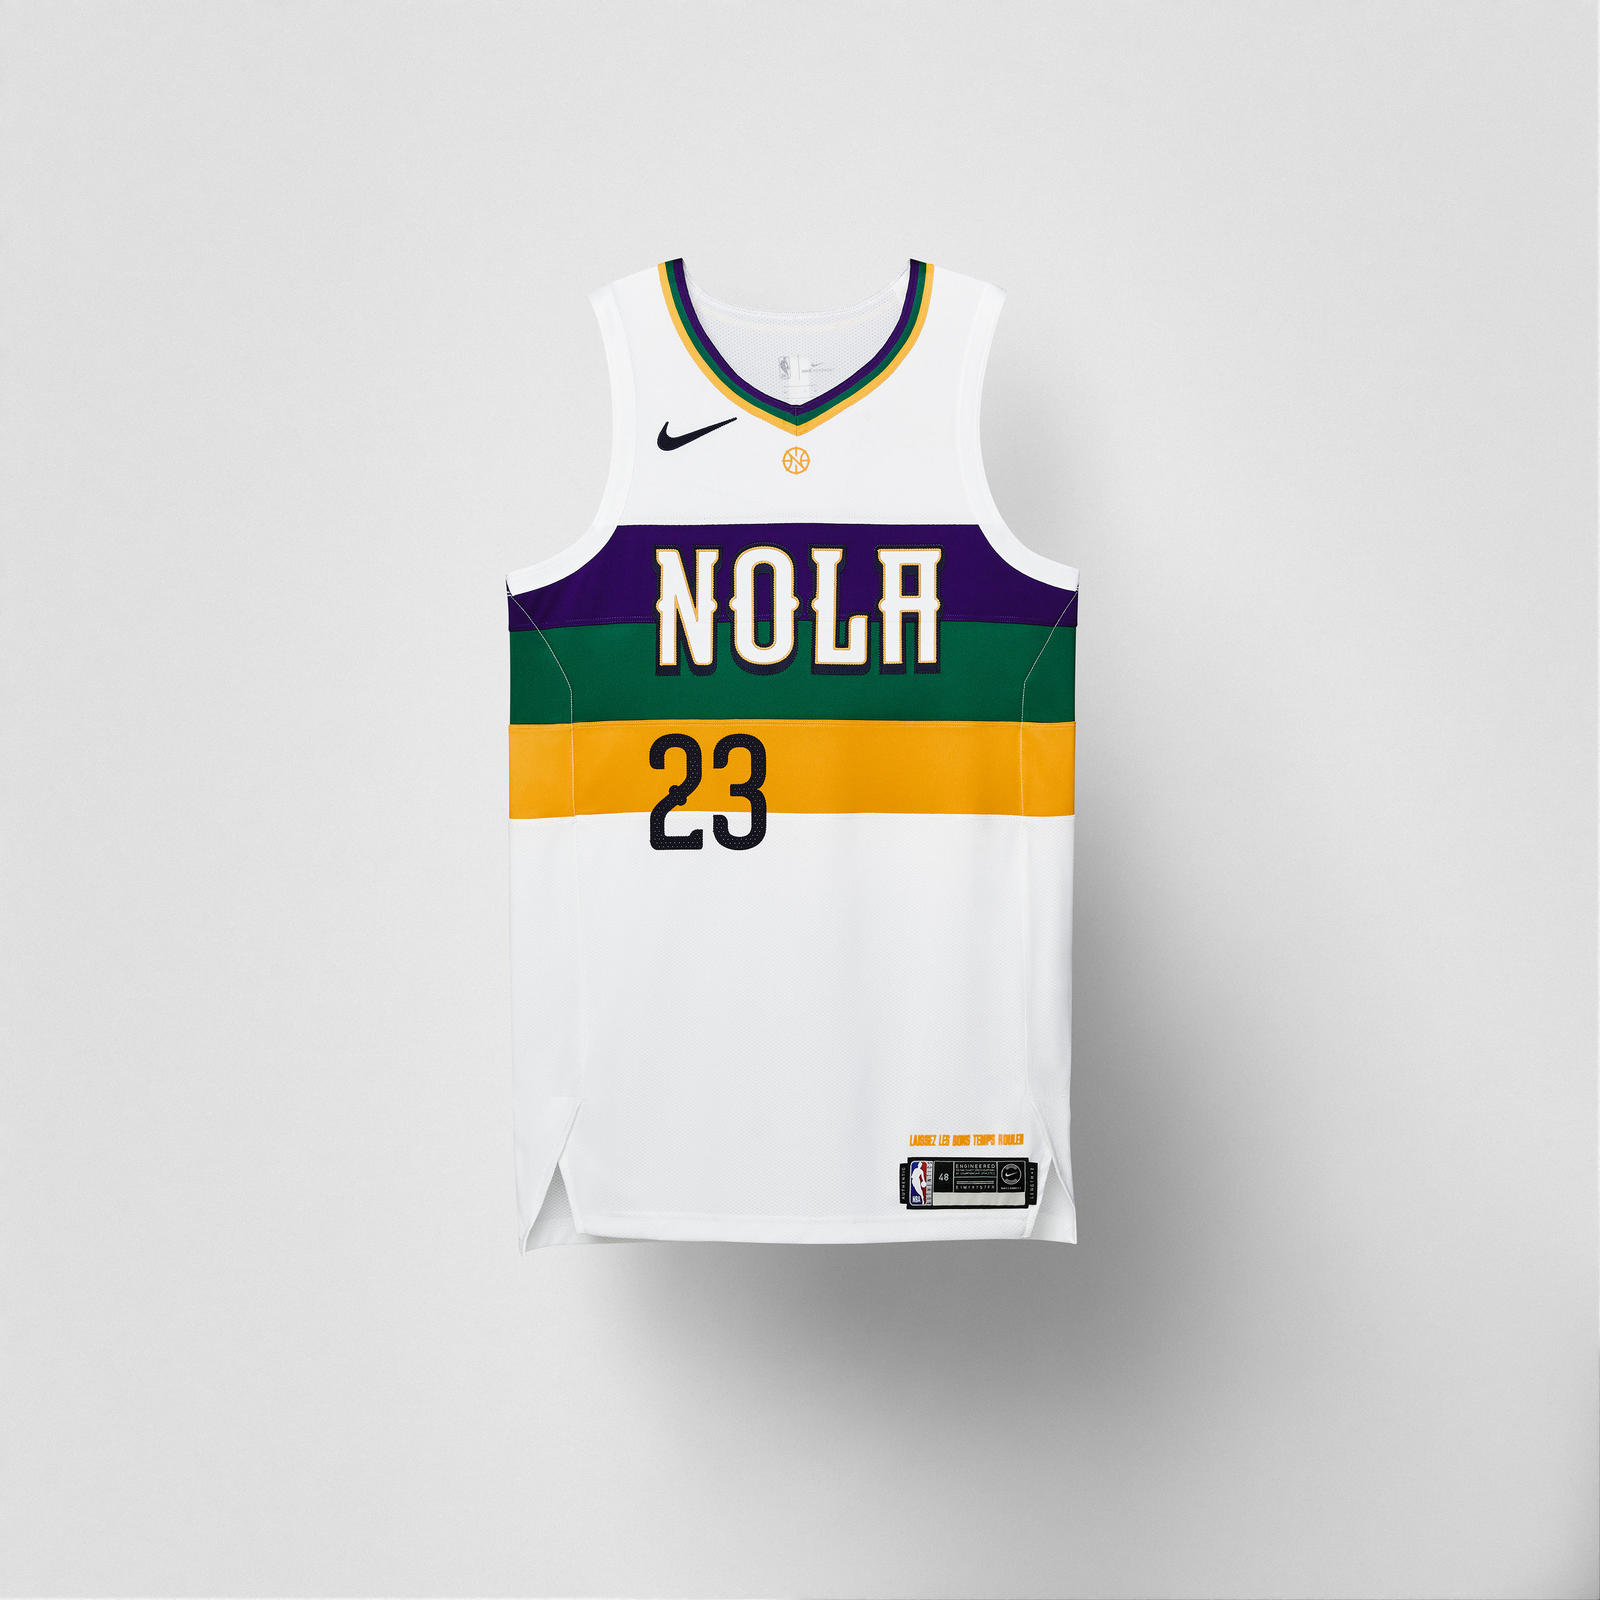 1b848fc5fbd Ranking every  City Edition  jersey